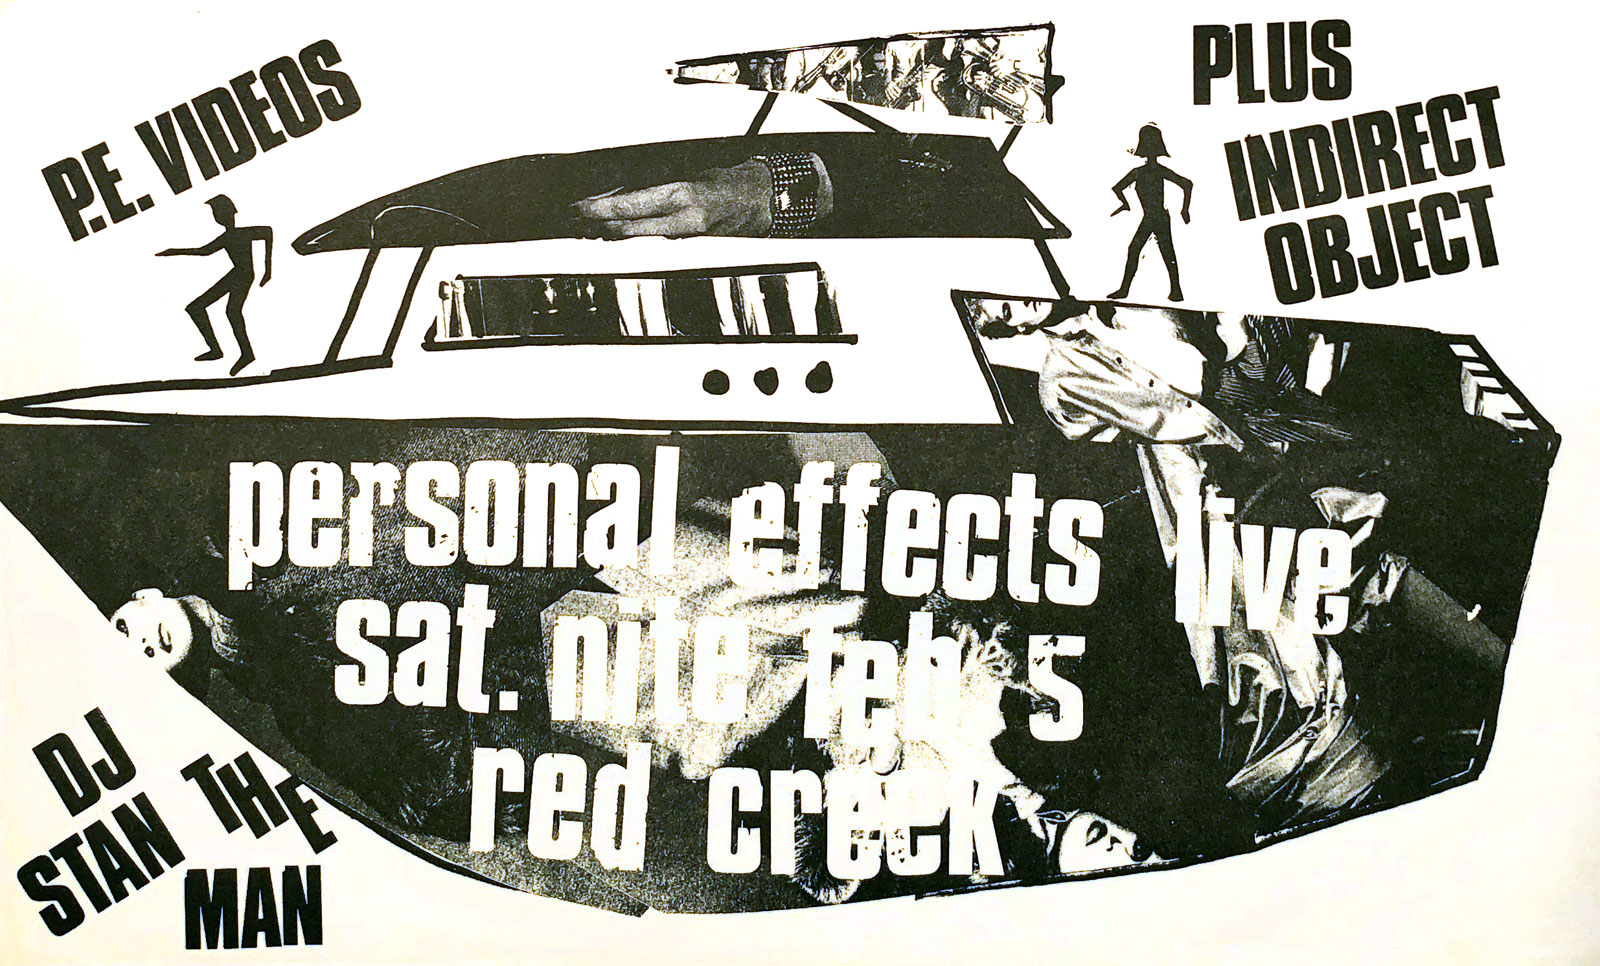 Poster for Personal Effects with Indirect Object at Red Creek in Rochester, New York on 02.05.1983. Indirect Object included future members of Squires of the Subterrain and The Hi Risers.